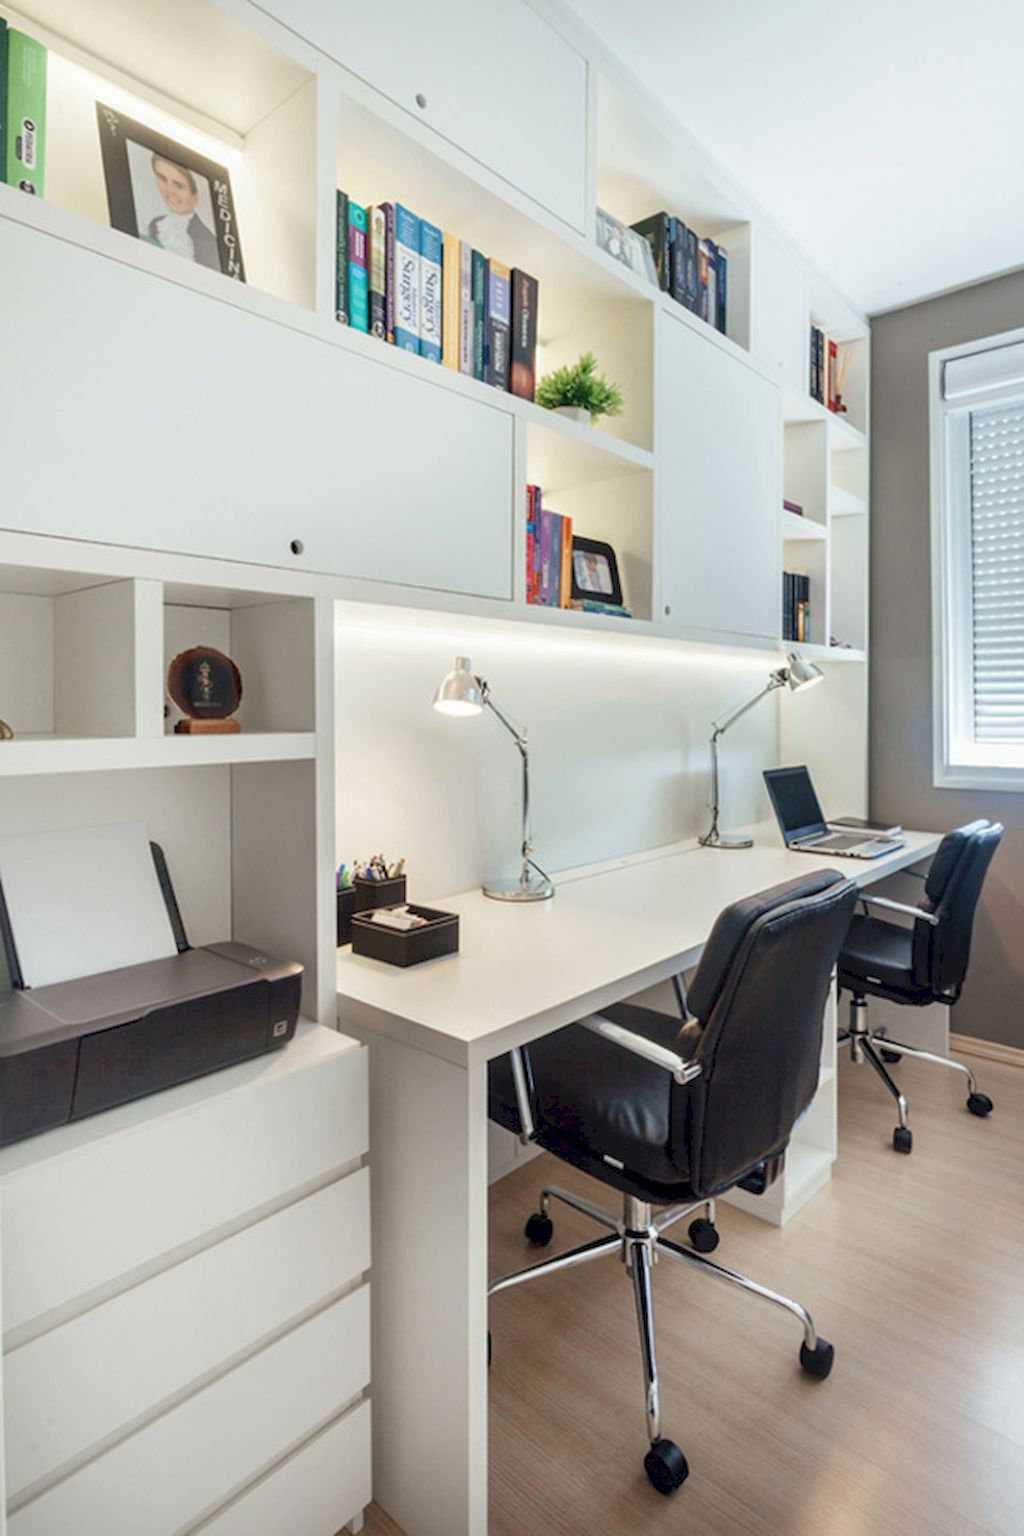 55 Modern Workspace Design Ideas Small Spaces 36 Home Office